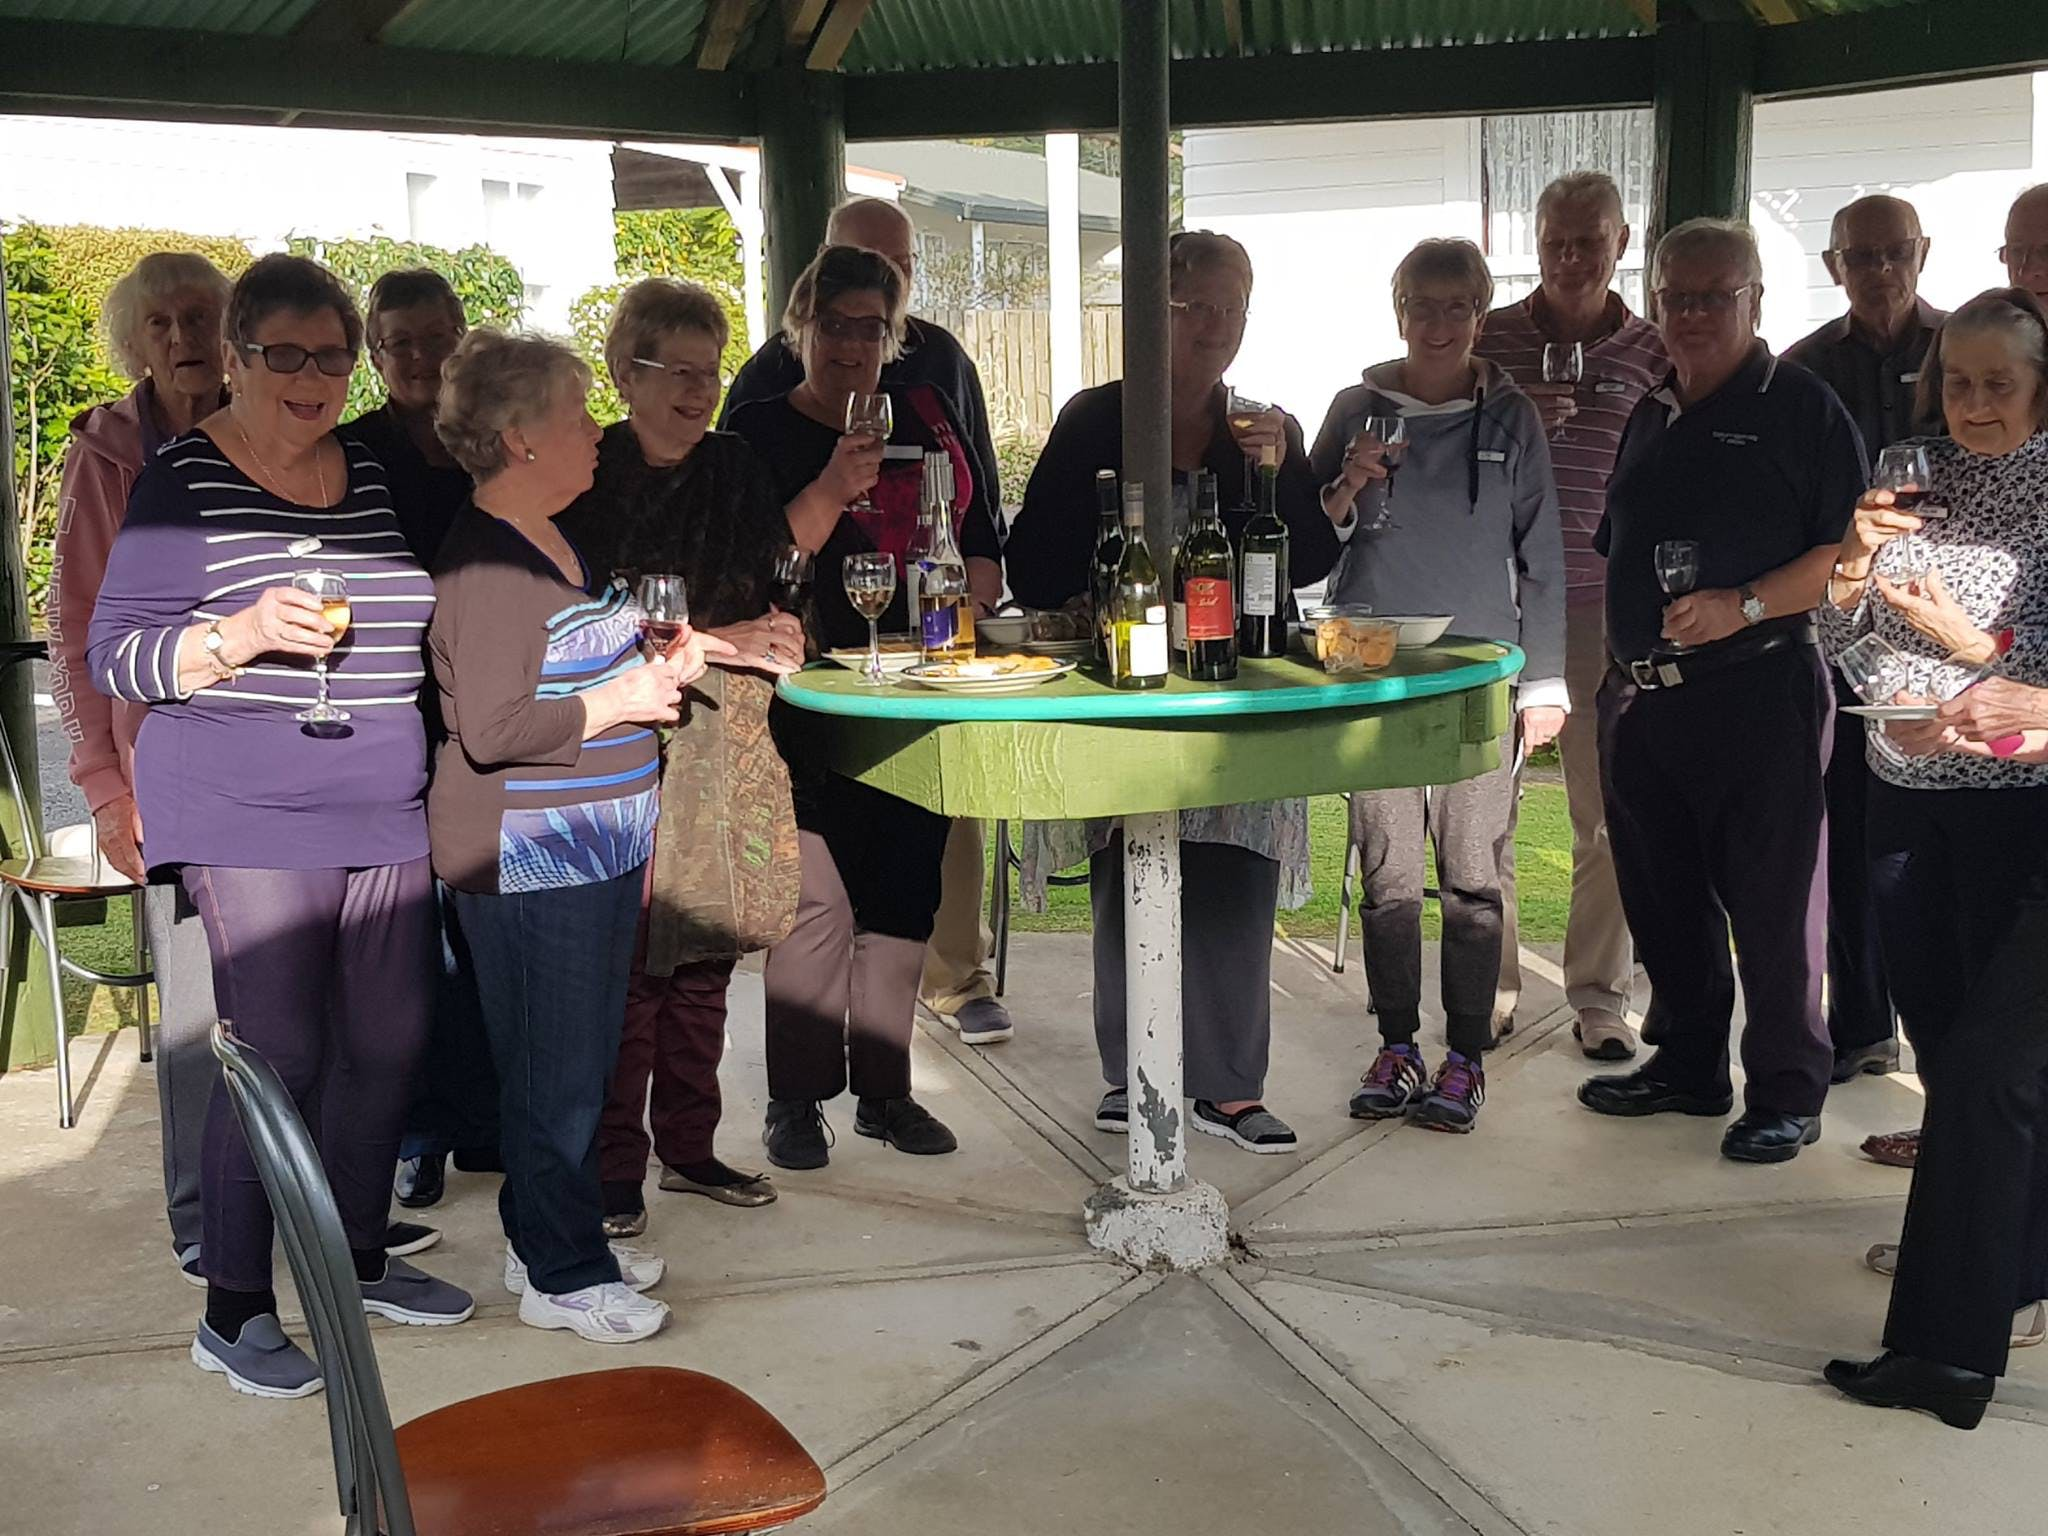 Guests enjoying a wine in a pergola